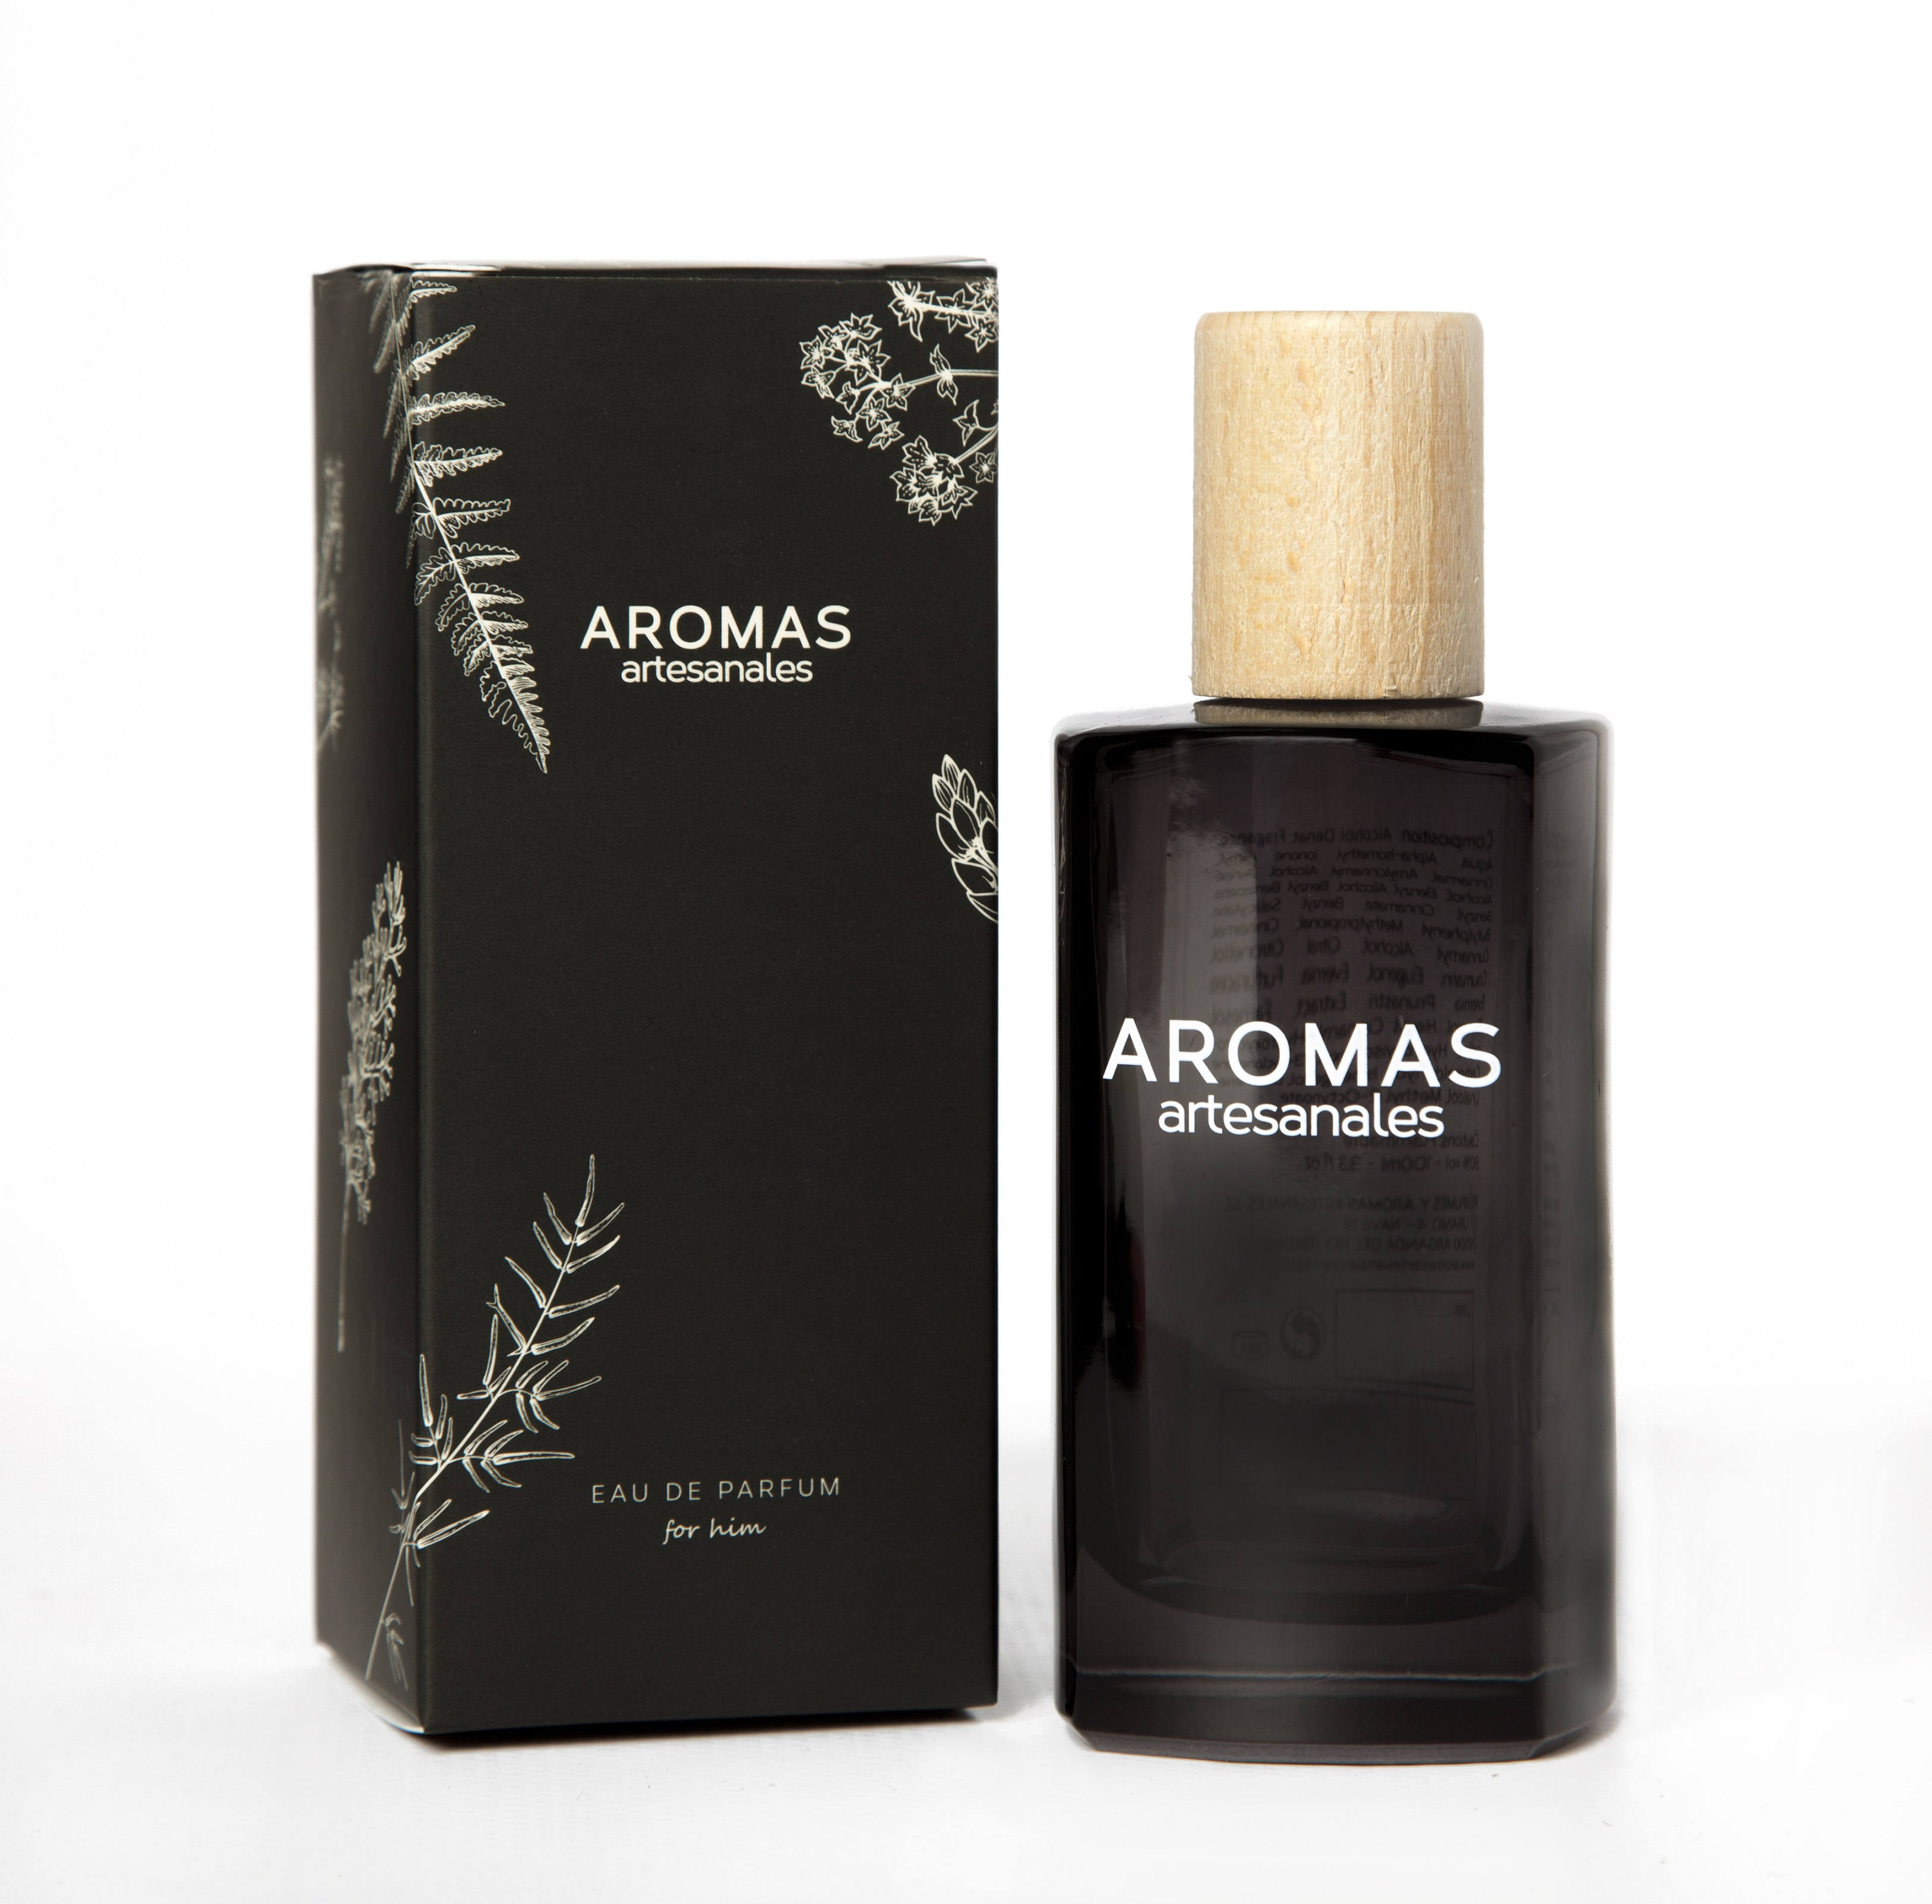 SCENTS CRAFT Barrax   Perfume With Spray For Men   Masculine Fragrance 100 Ml   Different Scents